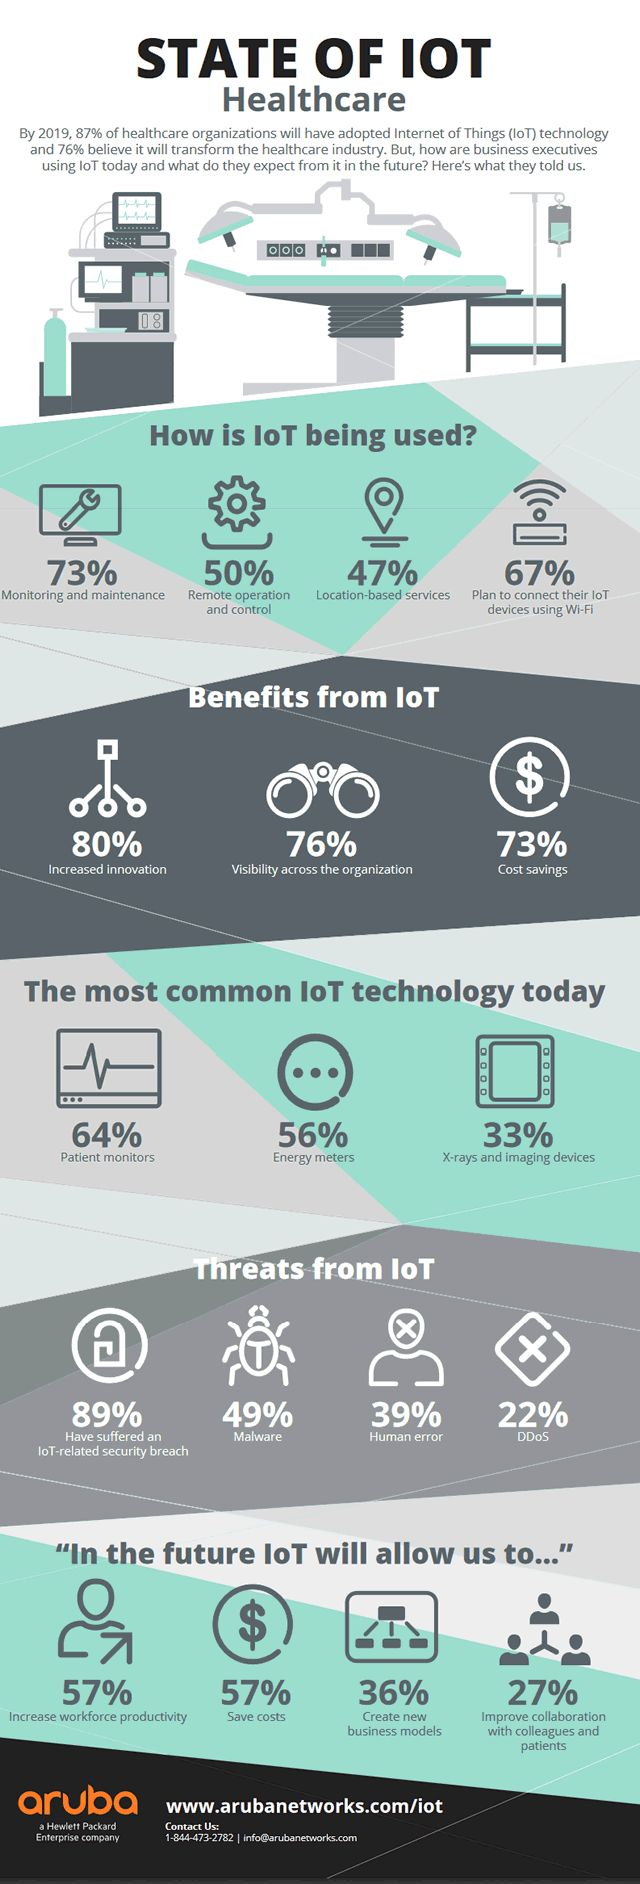 State of IoT Healthcare infographic by Aruba Networks - info on the research - larger infographic